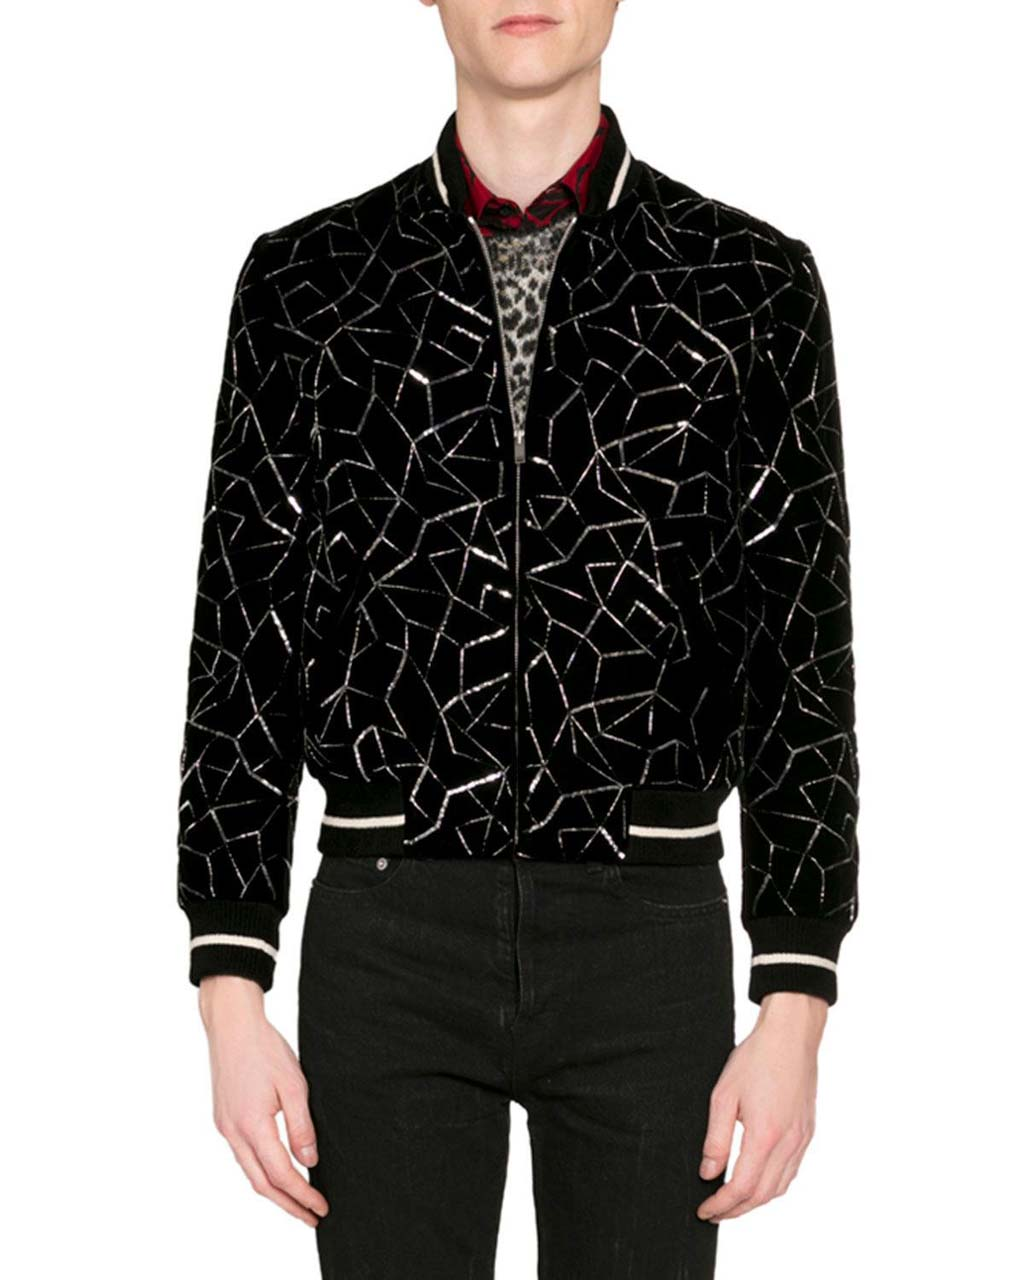 Saint Laurent Men's Teddy Embroidered Velvet Bomber Jacket